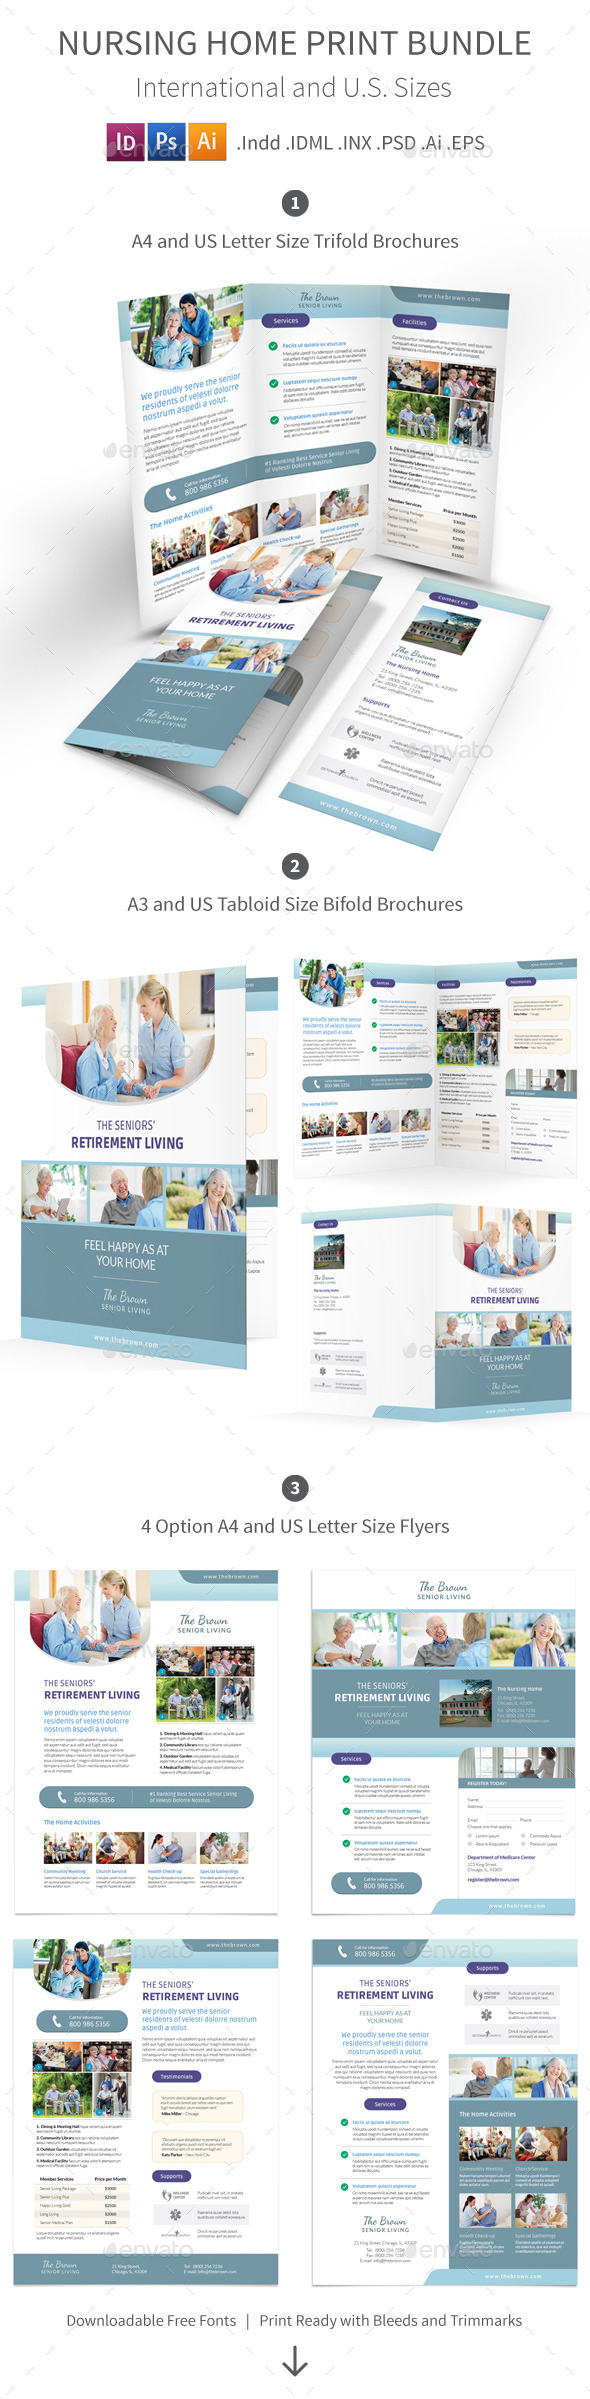 Nursing Home Print Bundle - Informational Brochures